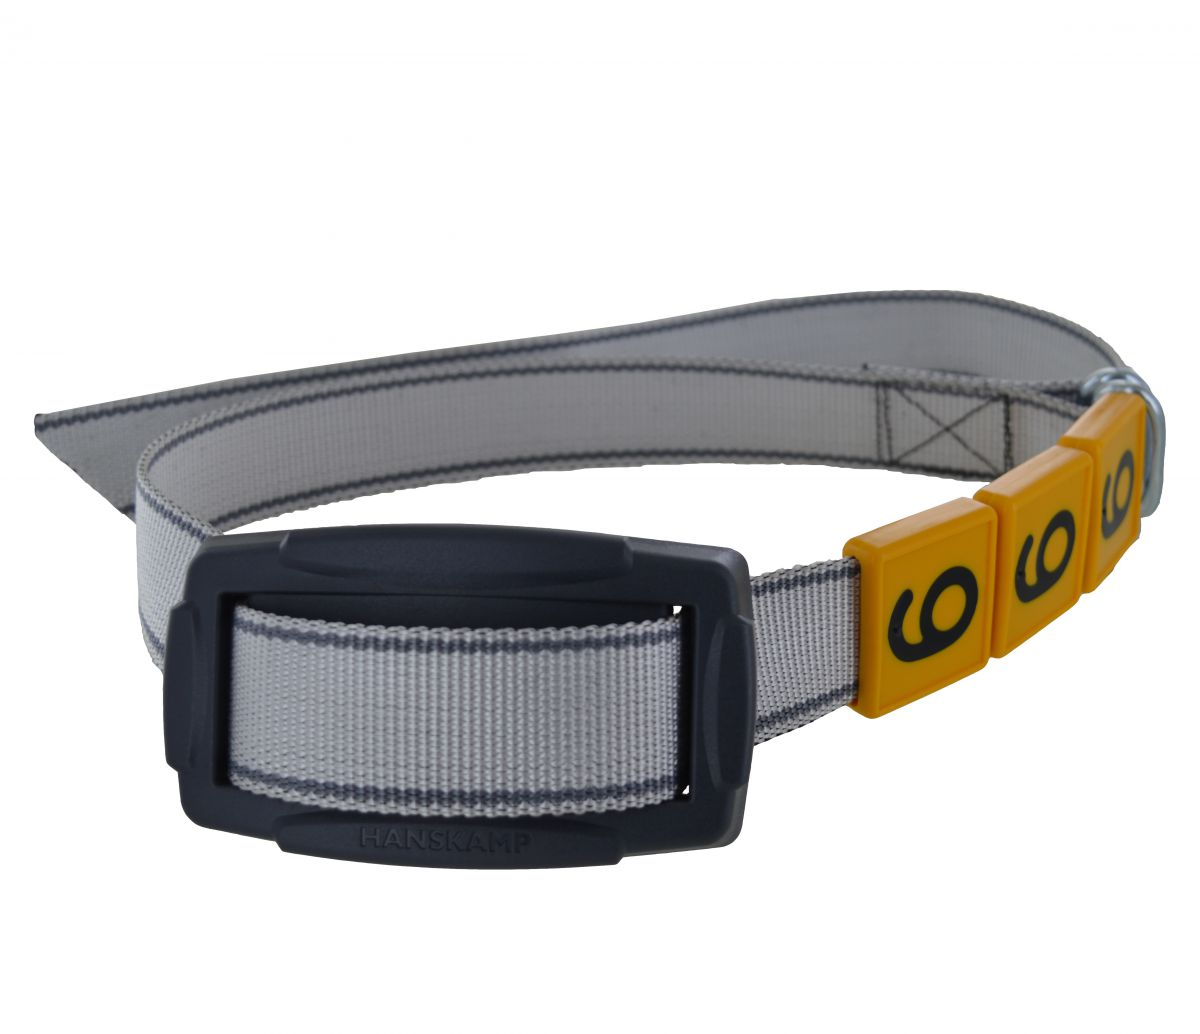 set with spidertag neck strap and id numbers for 90 animals no 1 90